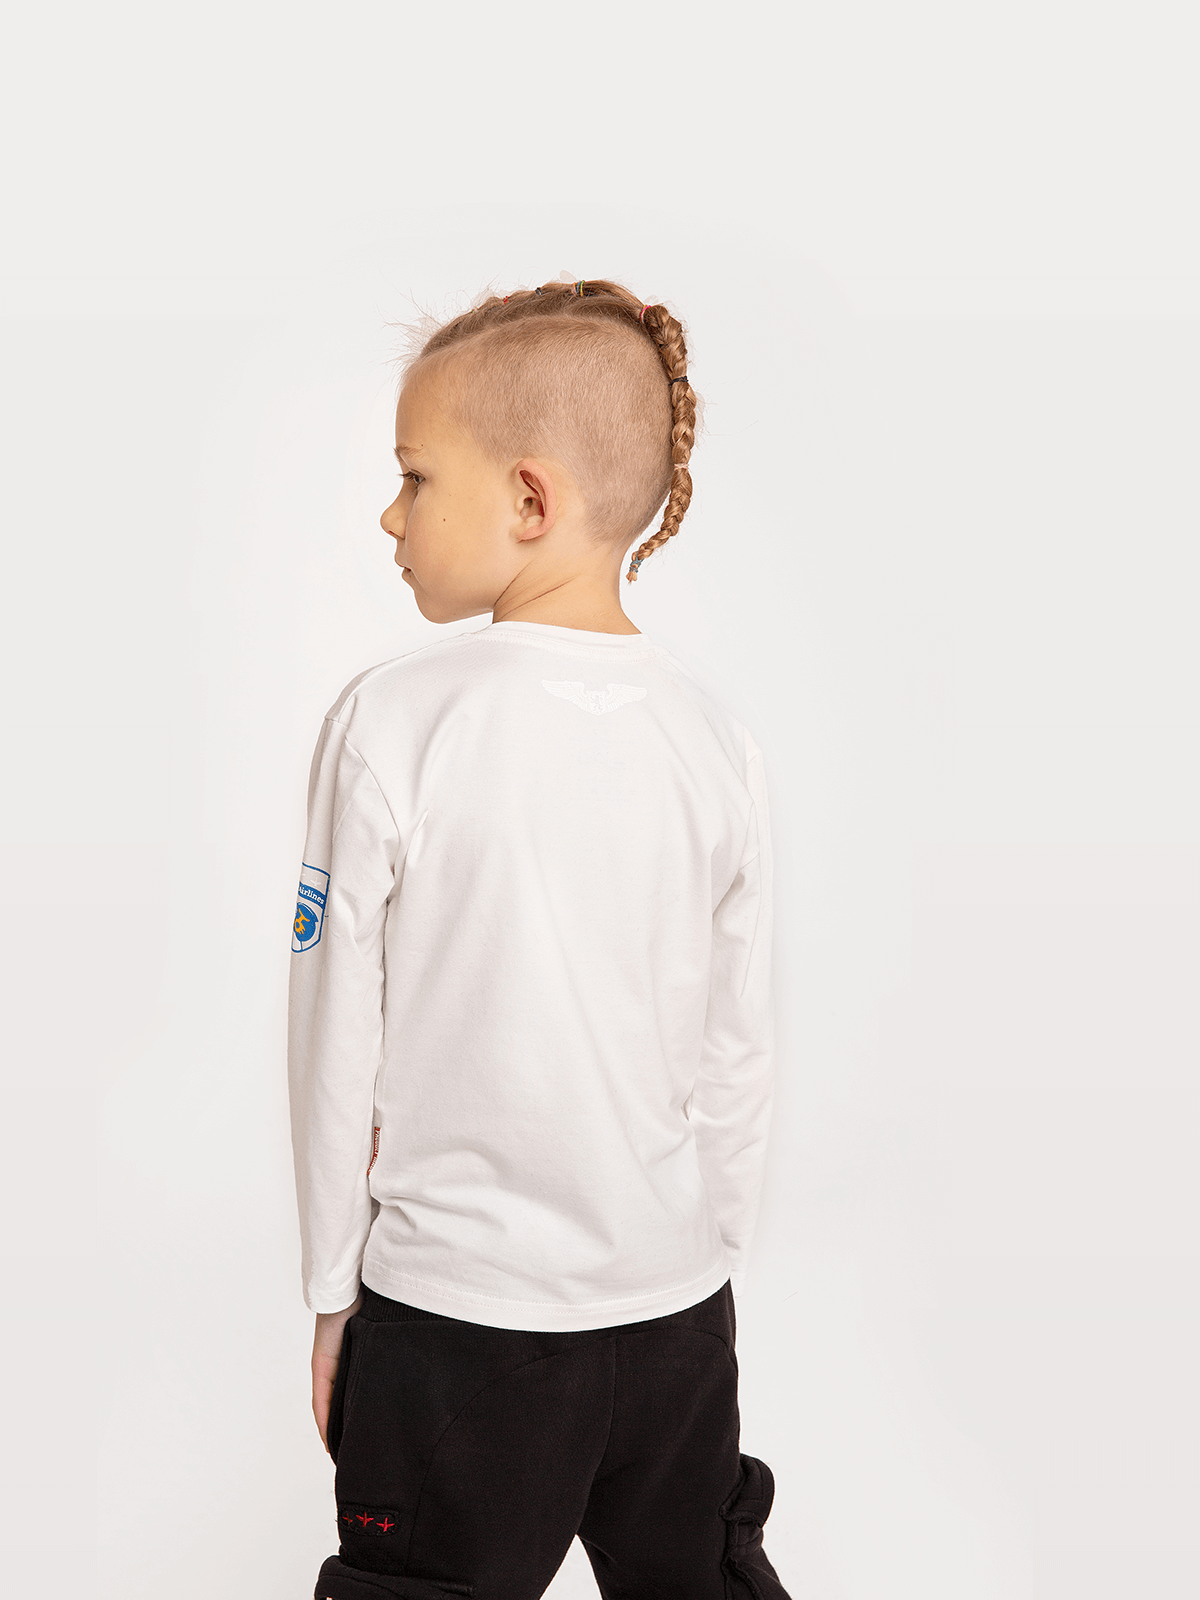 Kids Long Sleeves Kids Long Sleeves Mykolay. Color off-white.  The color shades on your screen may differ from the original color.